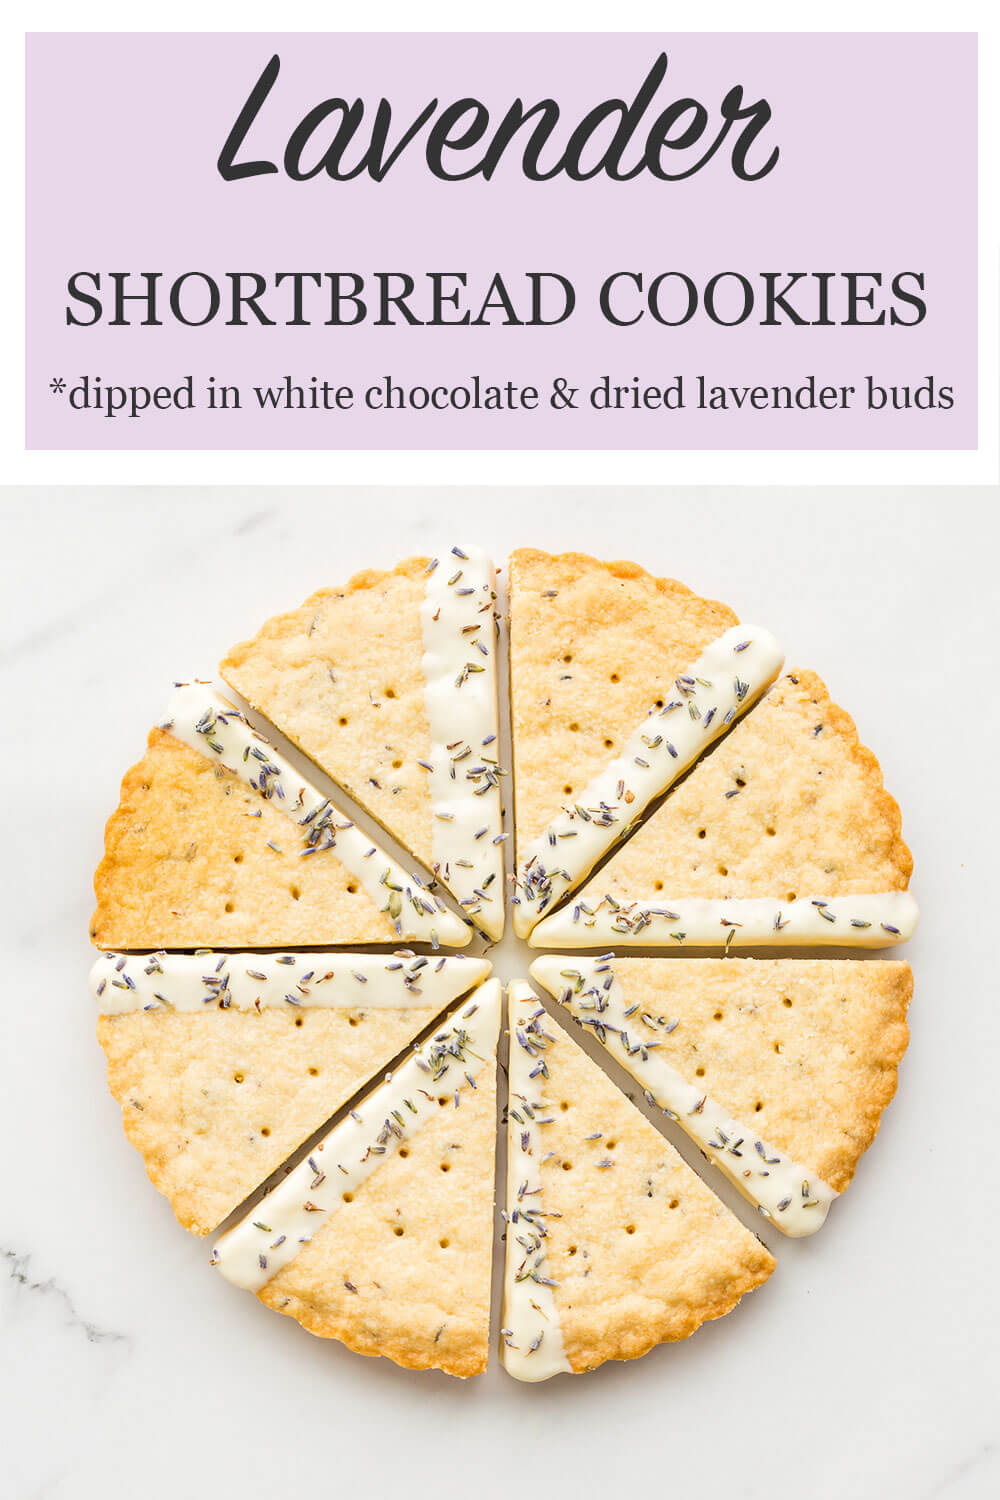 lavender shortbread cookies baked in a fluted tart pan for a scalloped edge, then cut into wedges and dipped in white chocolate and lavender buds